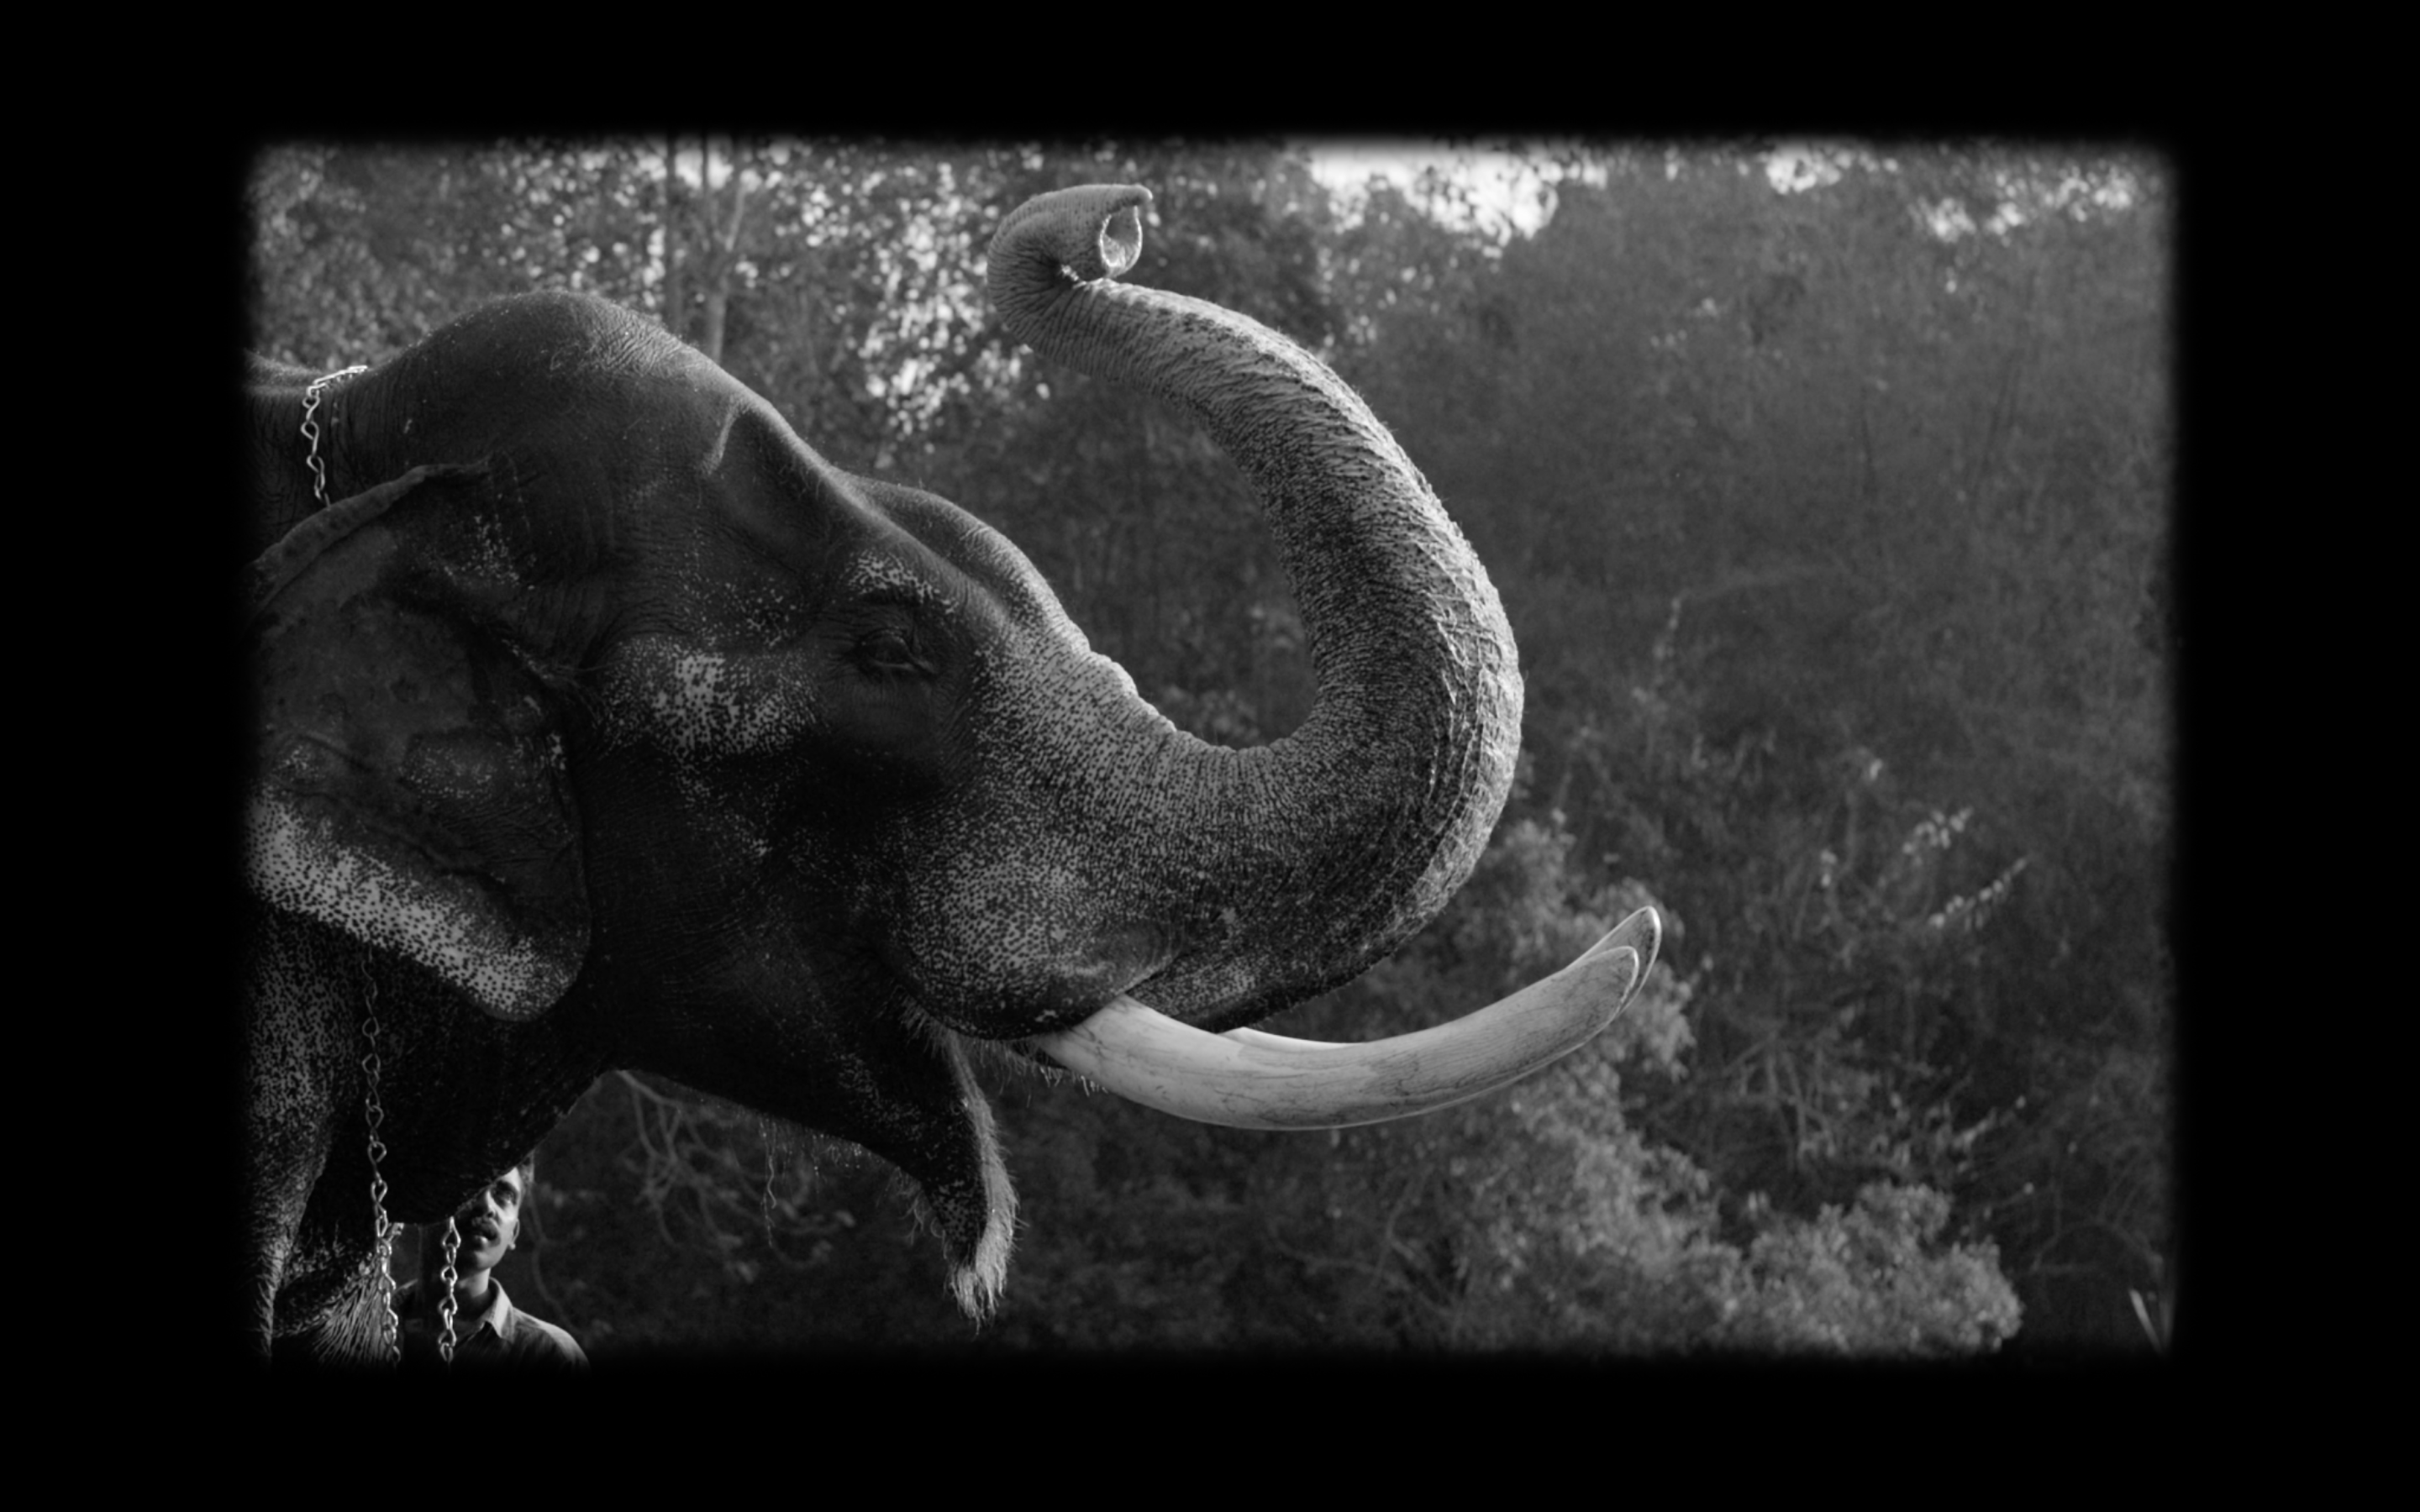 Black and white image of an elephant with its trunk in the air and a man standing beside it.